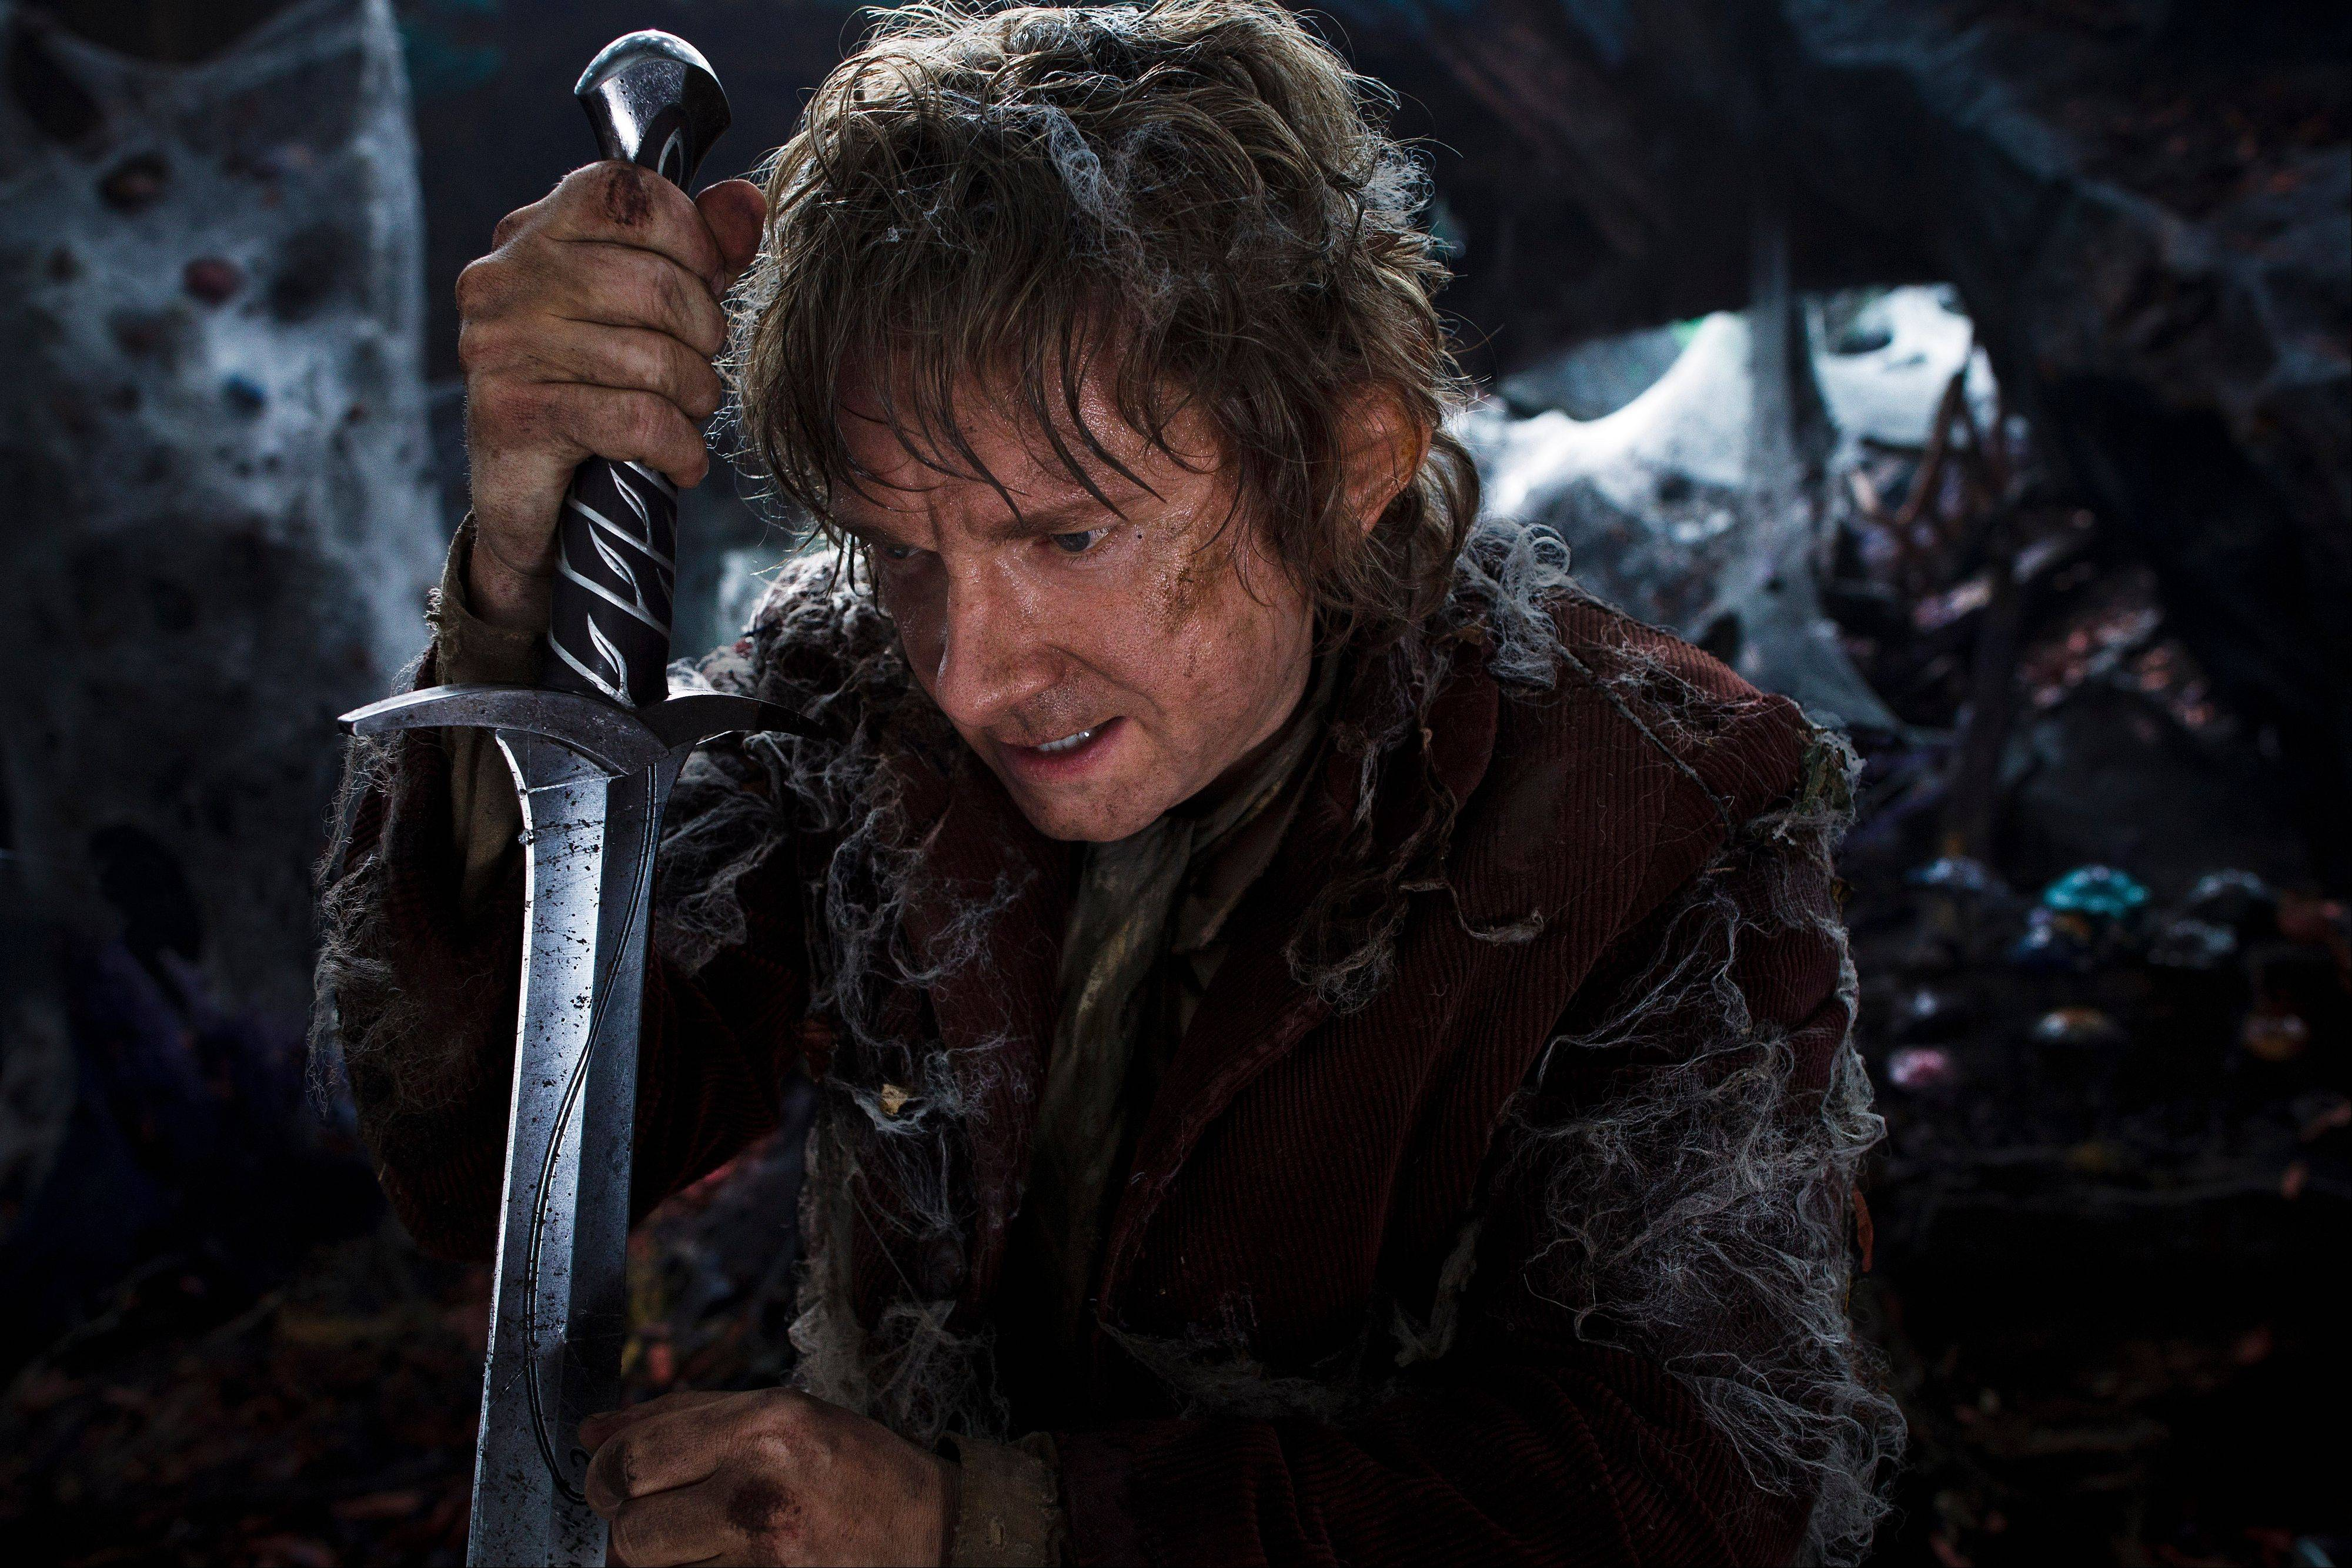 Martin Freeman plays Bilbo Baggins in �The Hobbit: The Desolation of Smaug.�